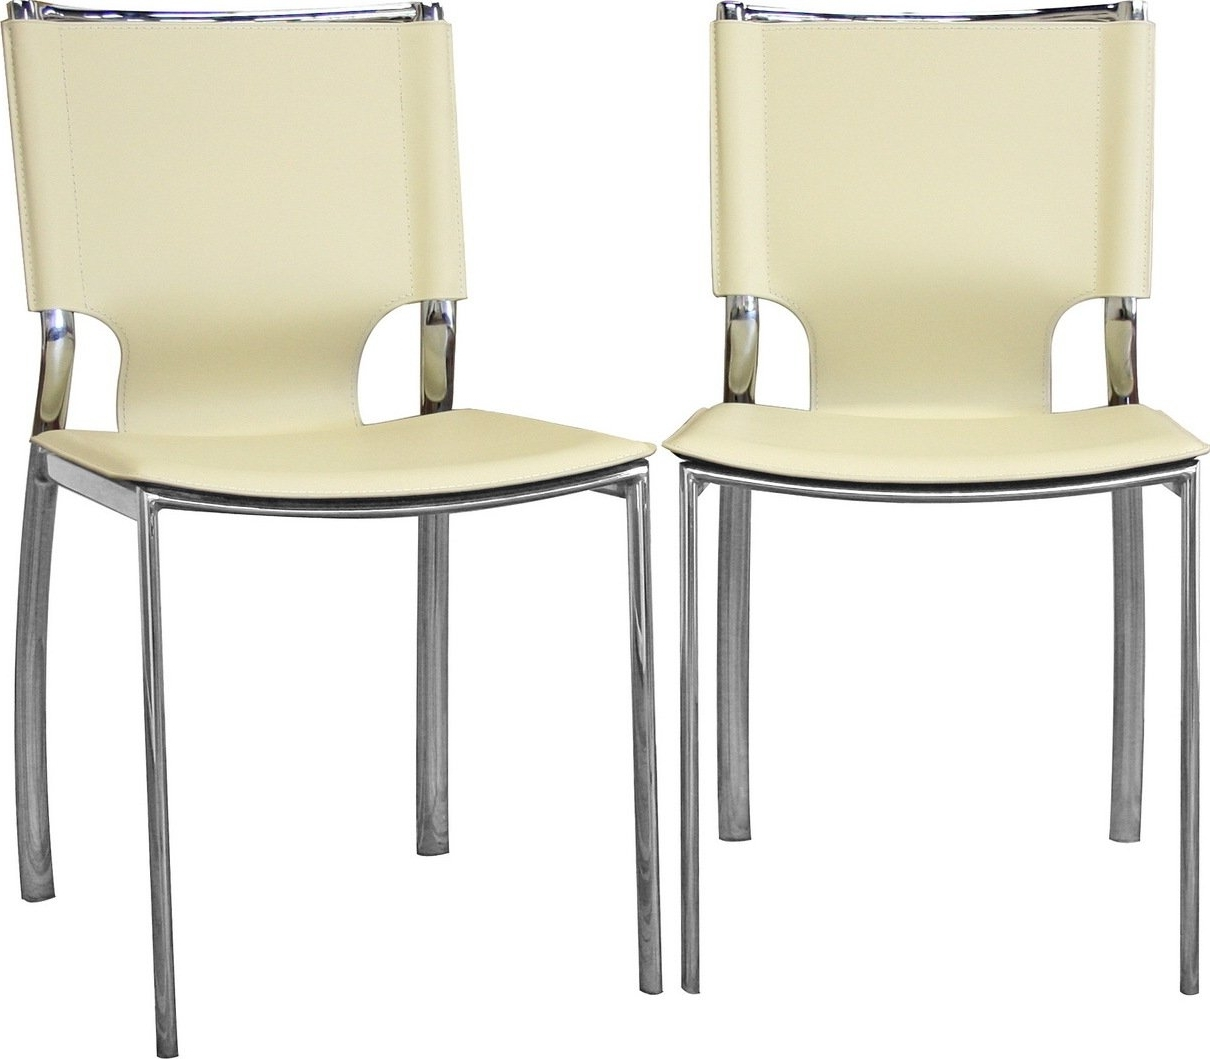 Dining Chairs Design Ideas With Well Known Ivory Leather Dining Chairs (View 18 of 25)